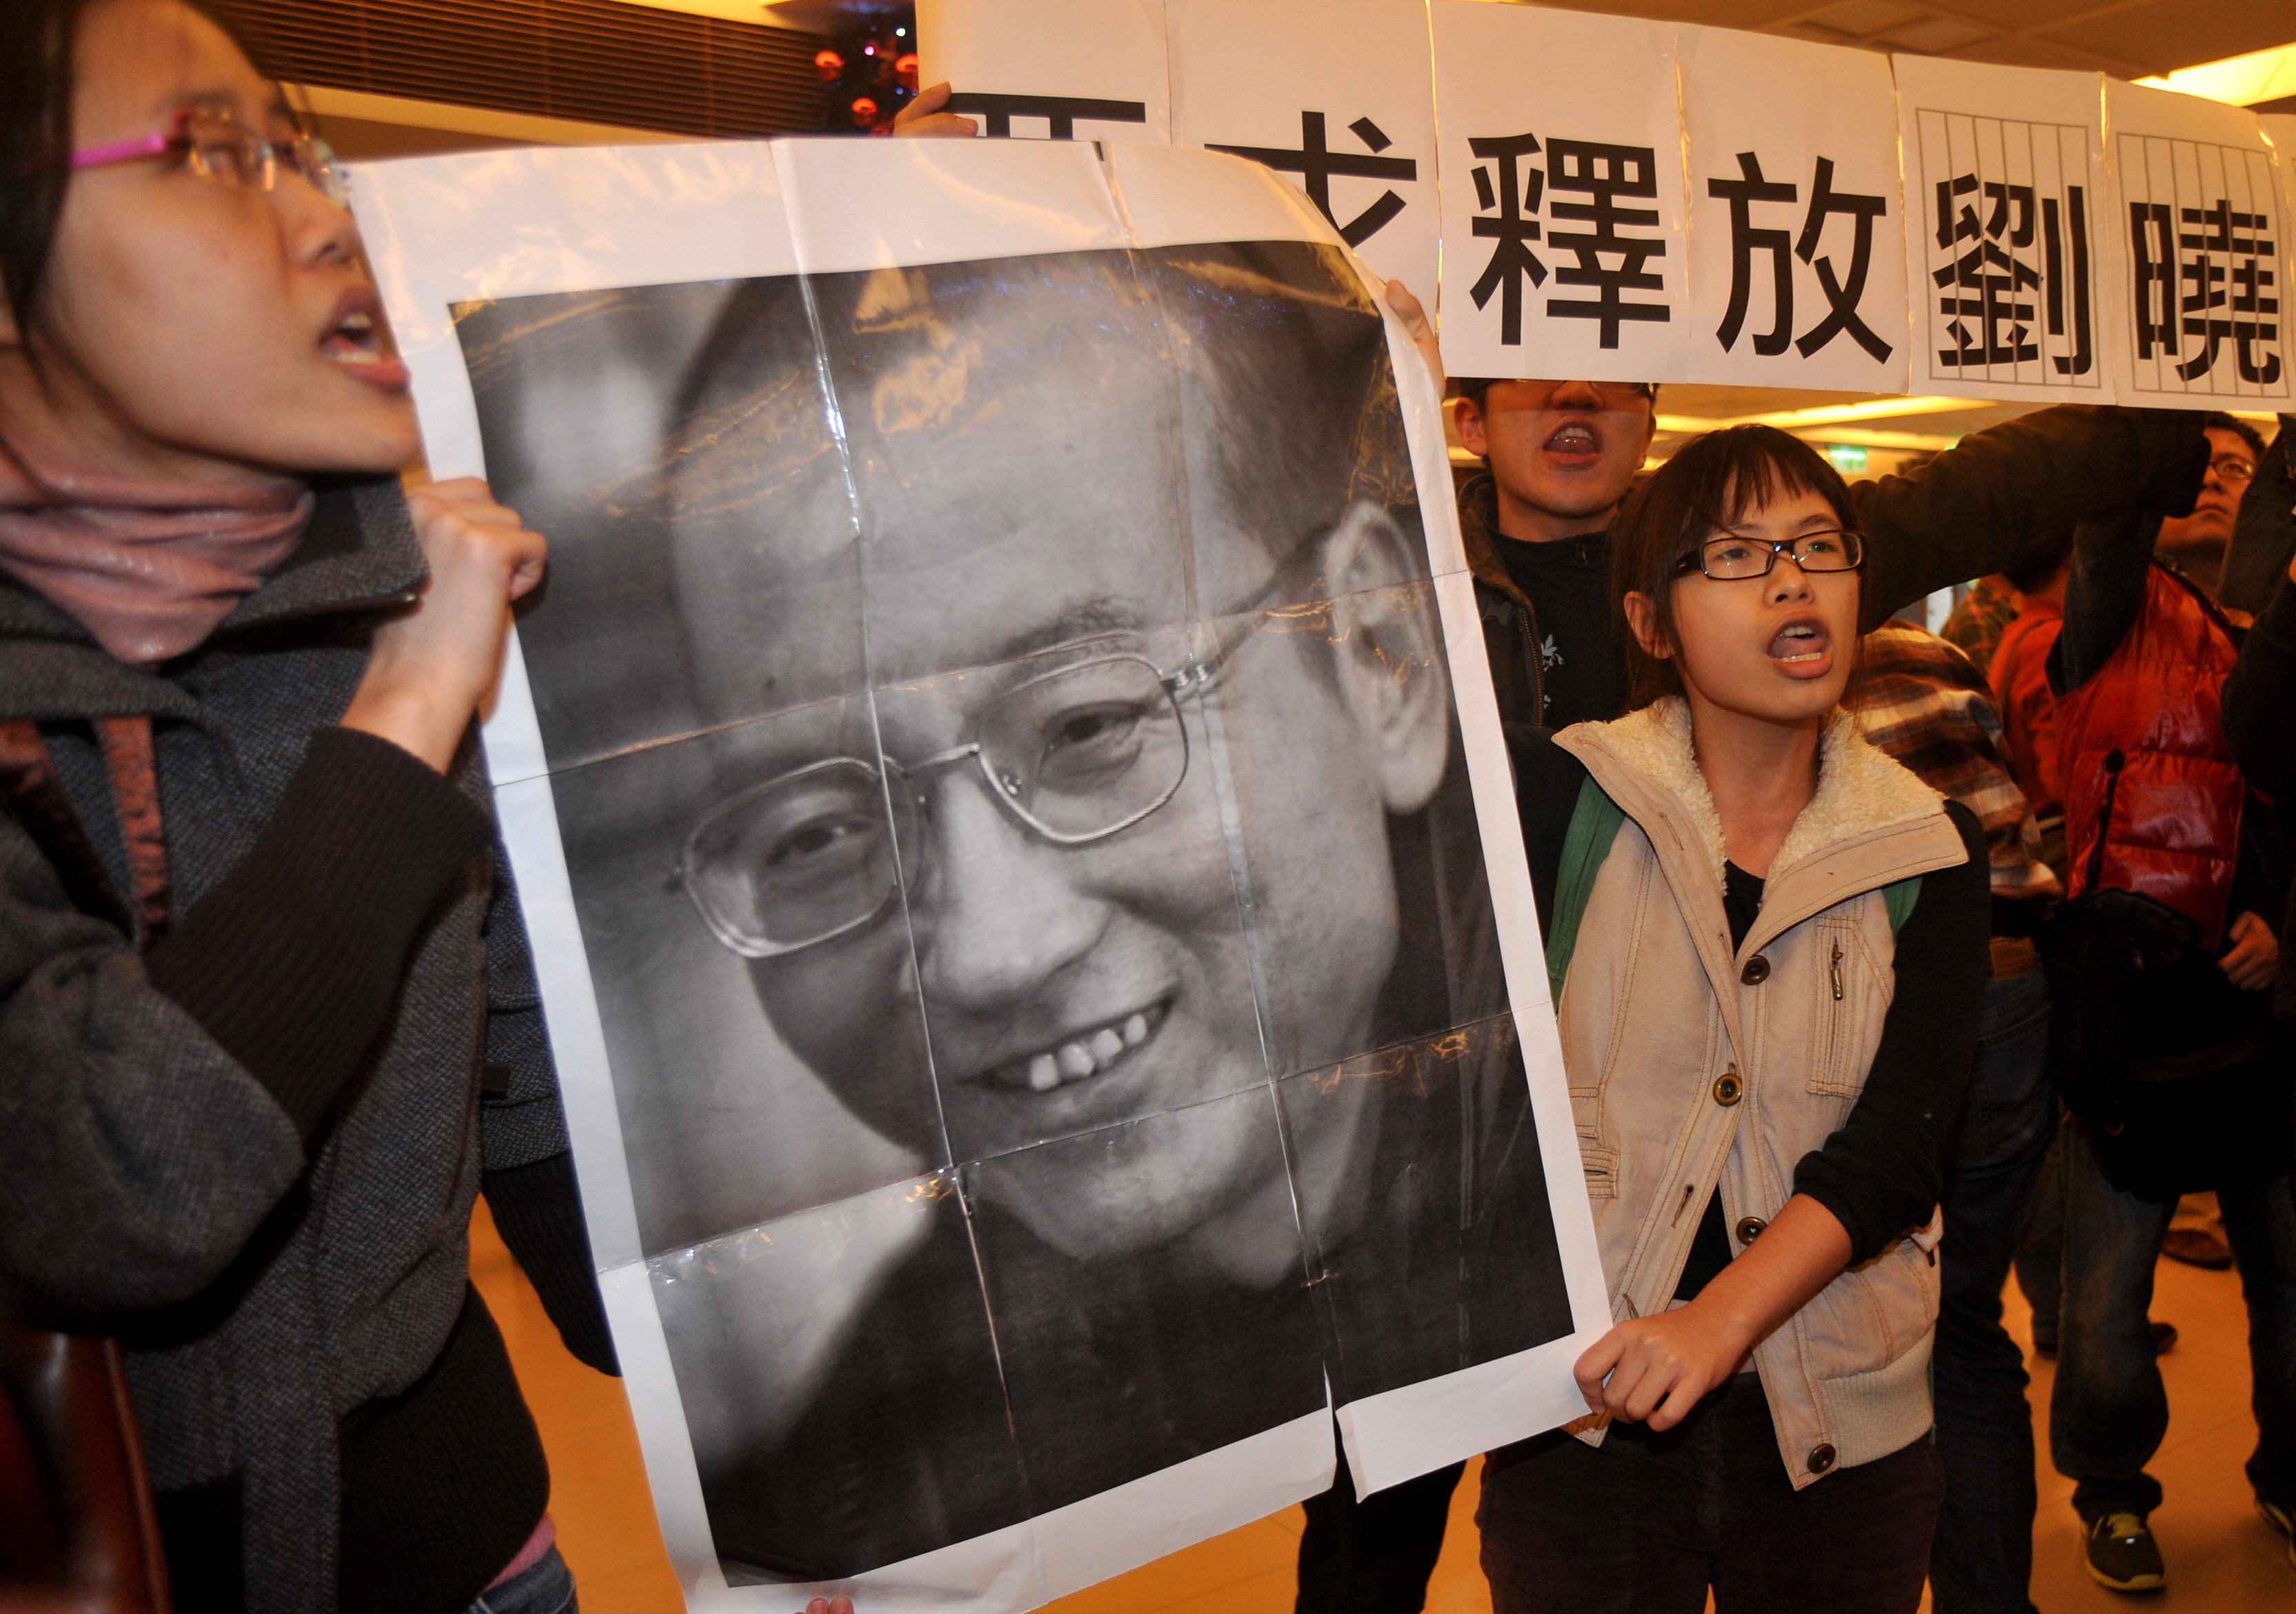 Demonstrators hold a portrait of China's detained Nobel Peace Prize winner Liu Xiaobo demanding his immediate release during a protest in the lobby of Taipei's National Palace Museum where China's top negotiator Chen Yunlin visited on Dec. 20, 2010.